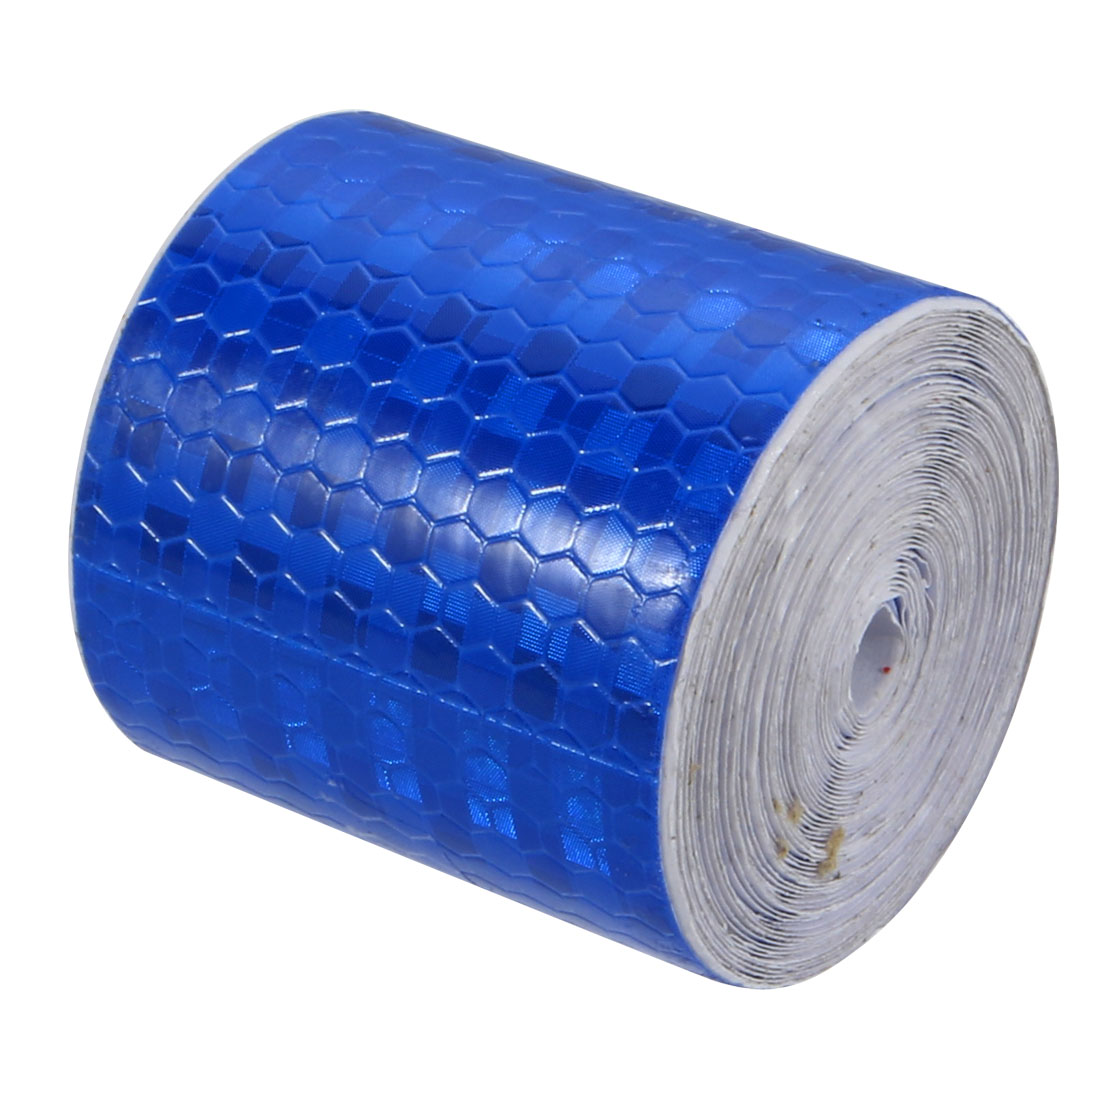 5cm Width 4Meter Length Honeycomb Adhesive Reflective Warning Tape Blue